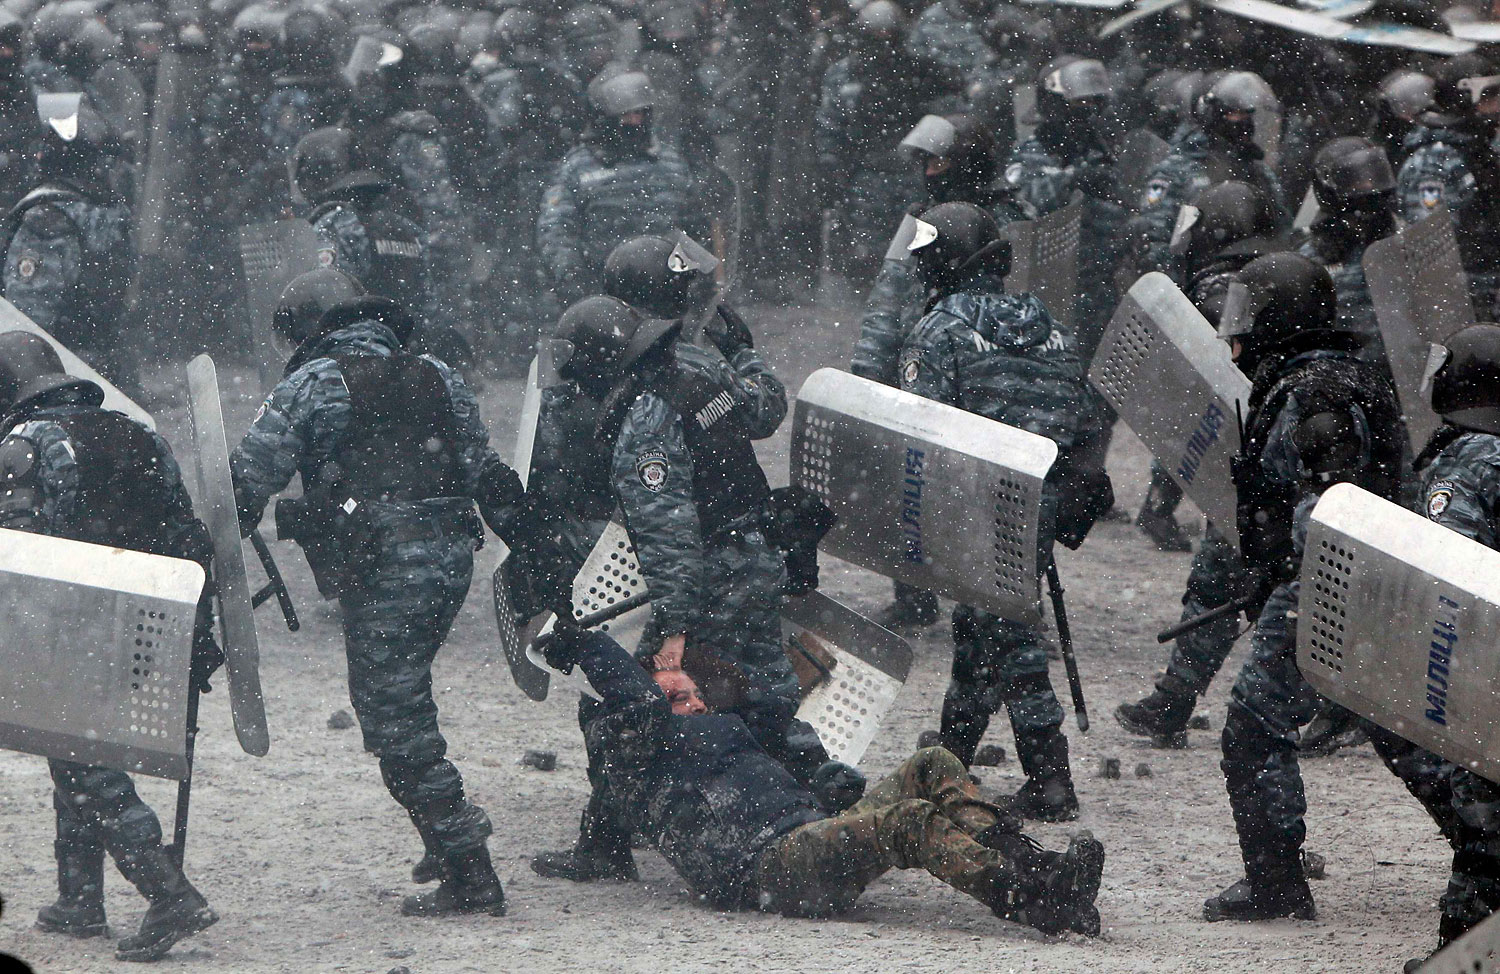 Riot police officers hold a man during clashes with pro-European protesters in Kiev, Jan. 22, 2014.